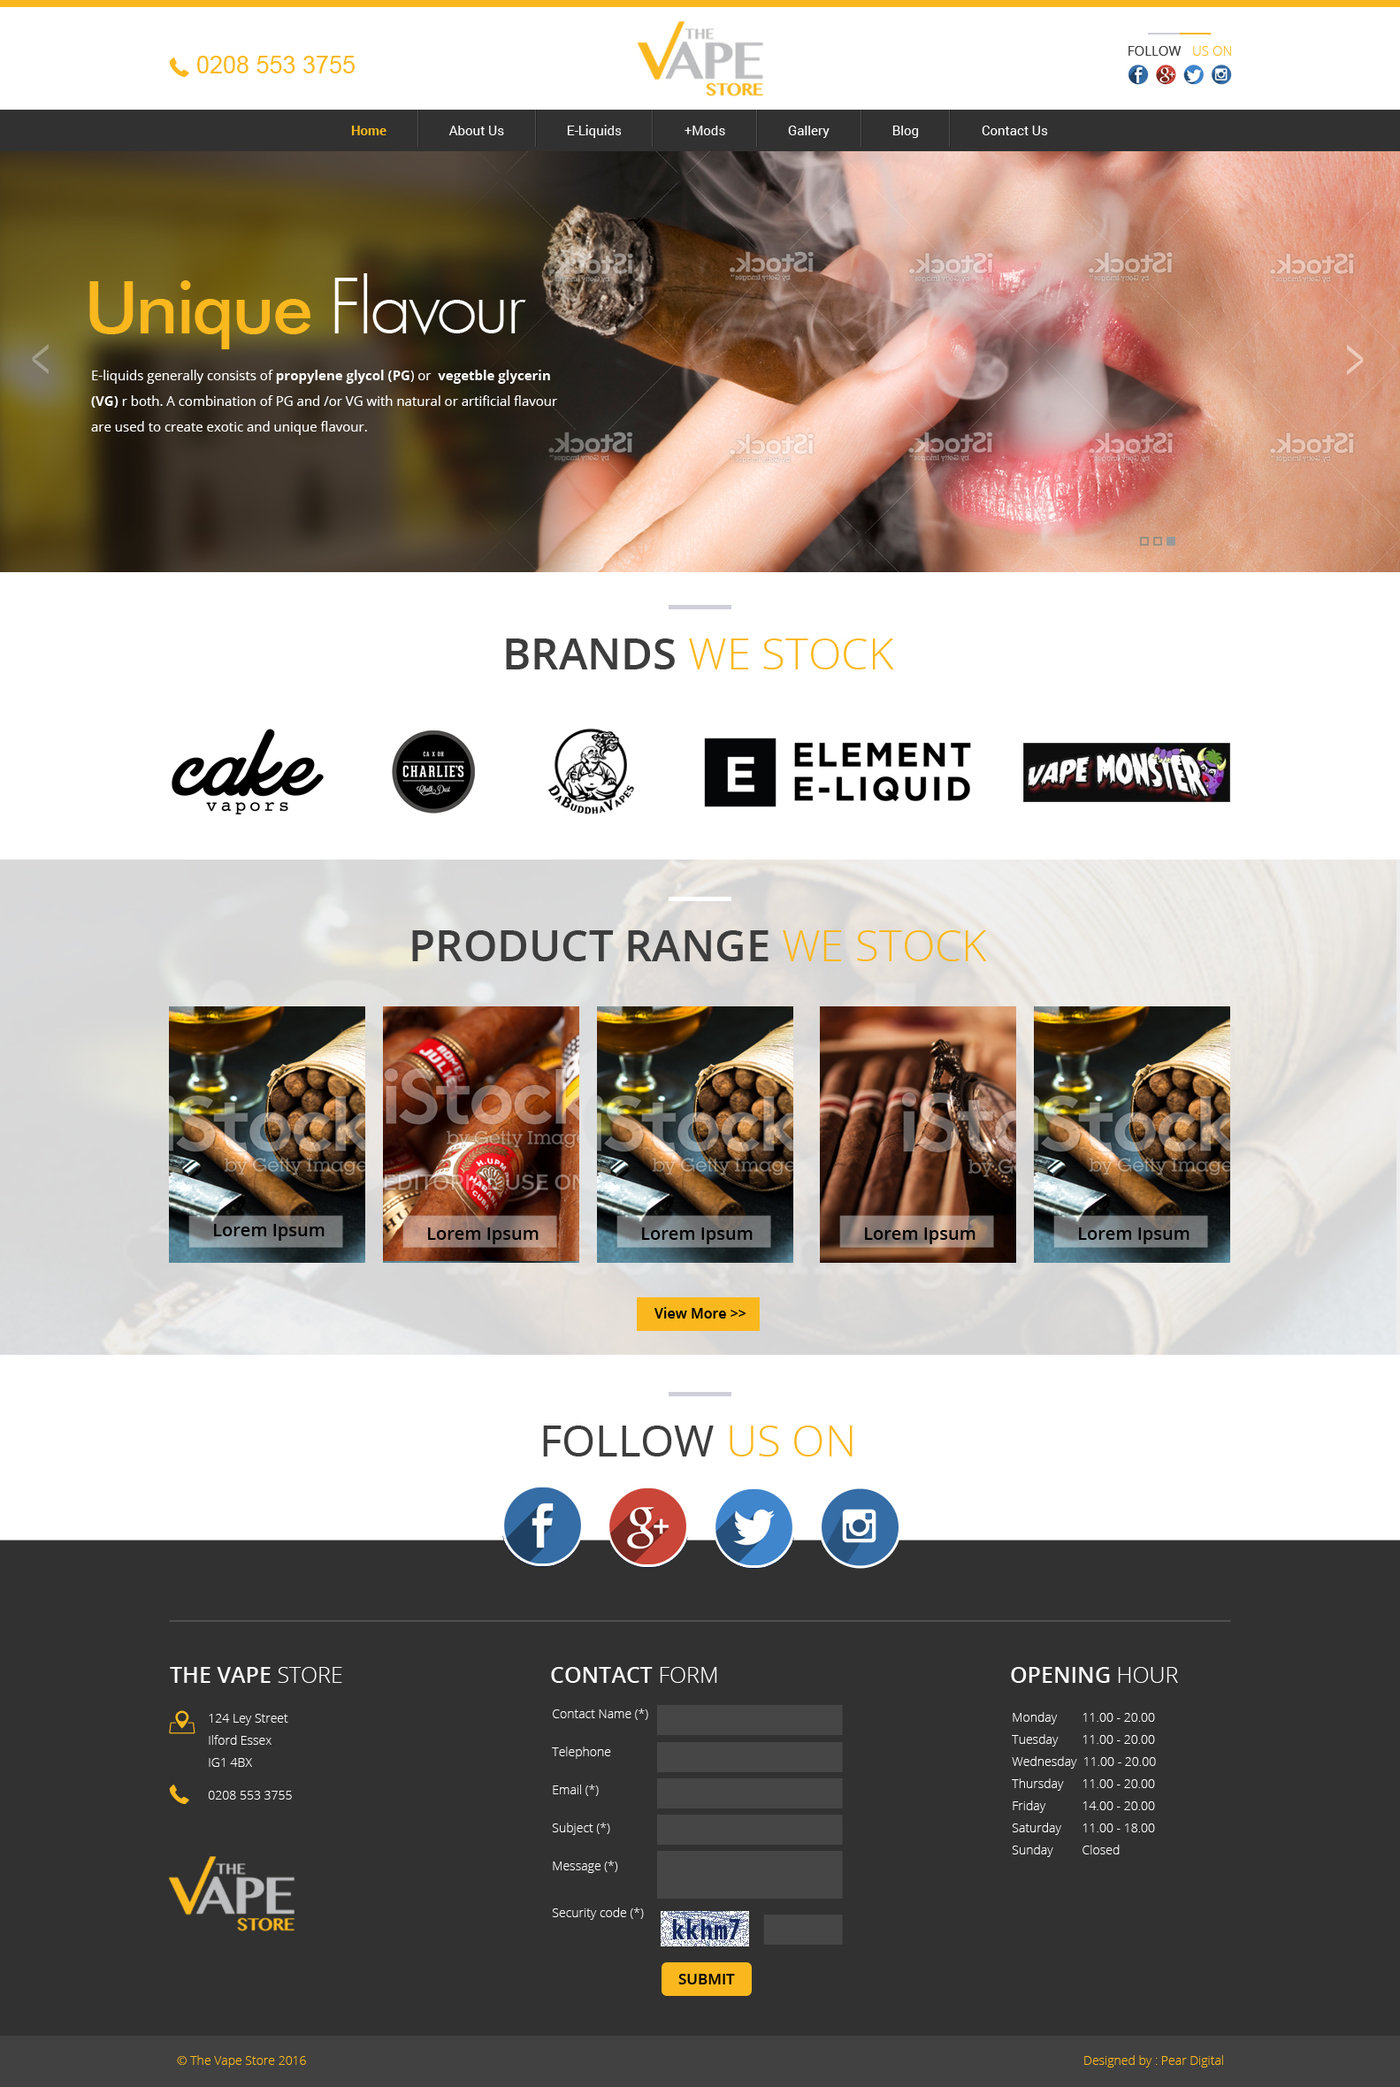 The Vape-Store Website by Mayur Graphic at Coroflot com